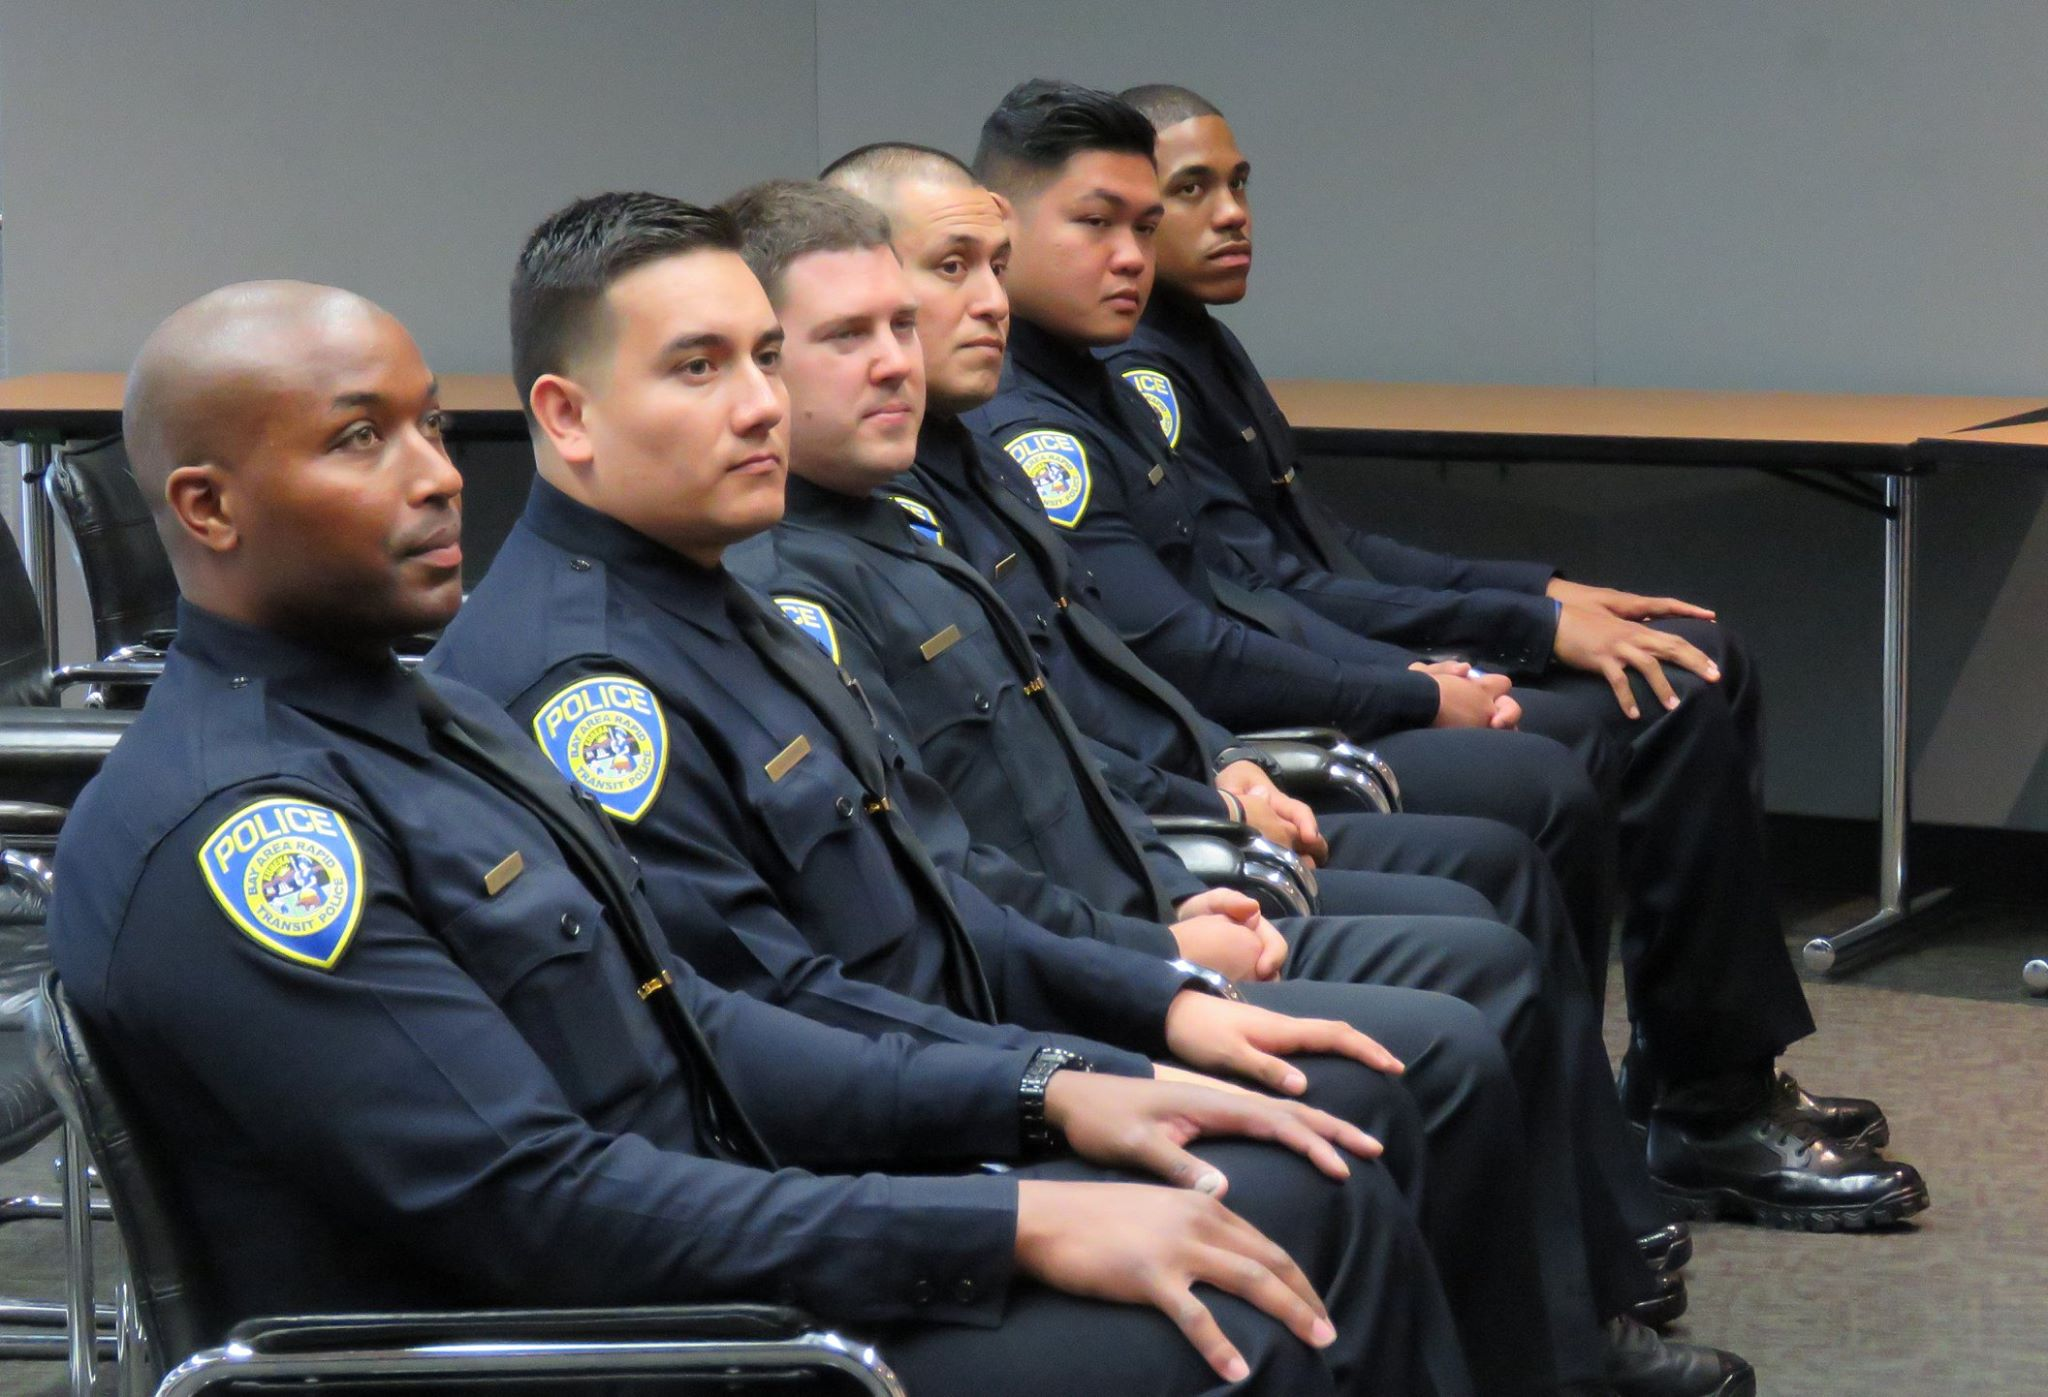 BART PD recruiting efforts pay off with new experienced